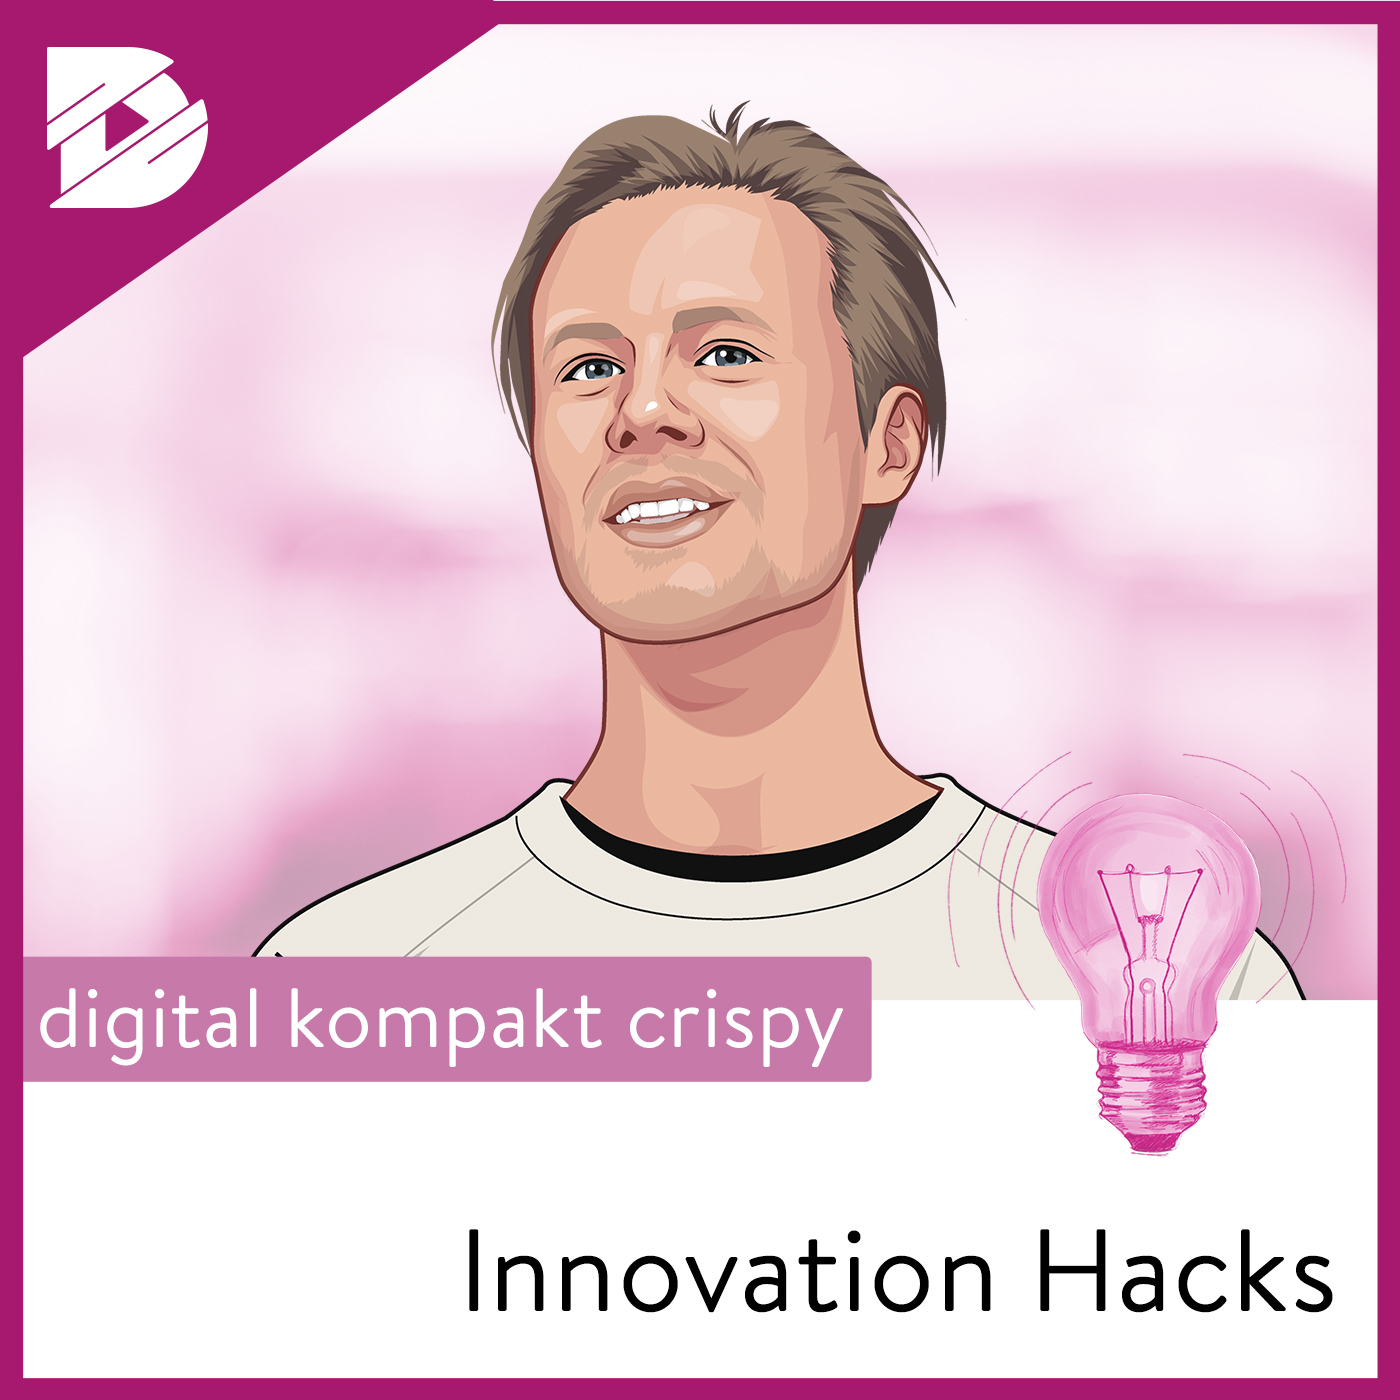 Innovation Hacks